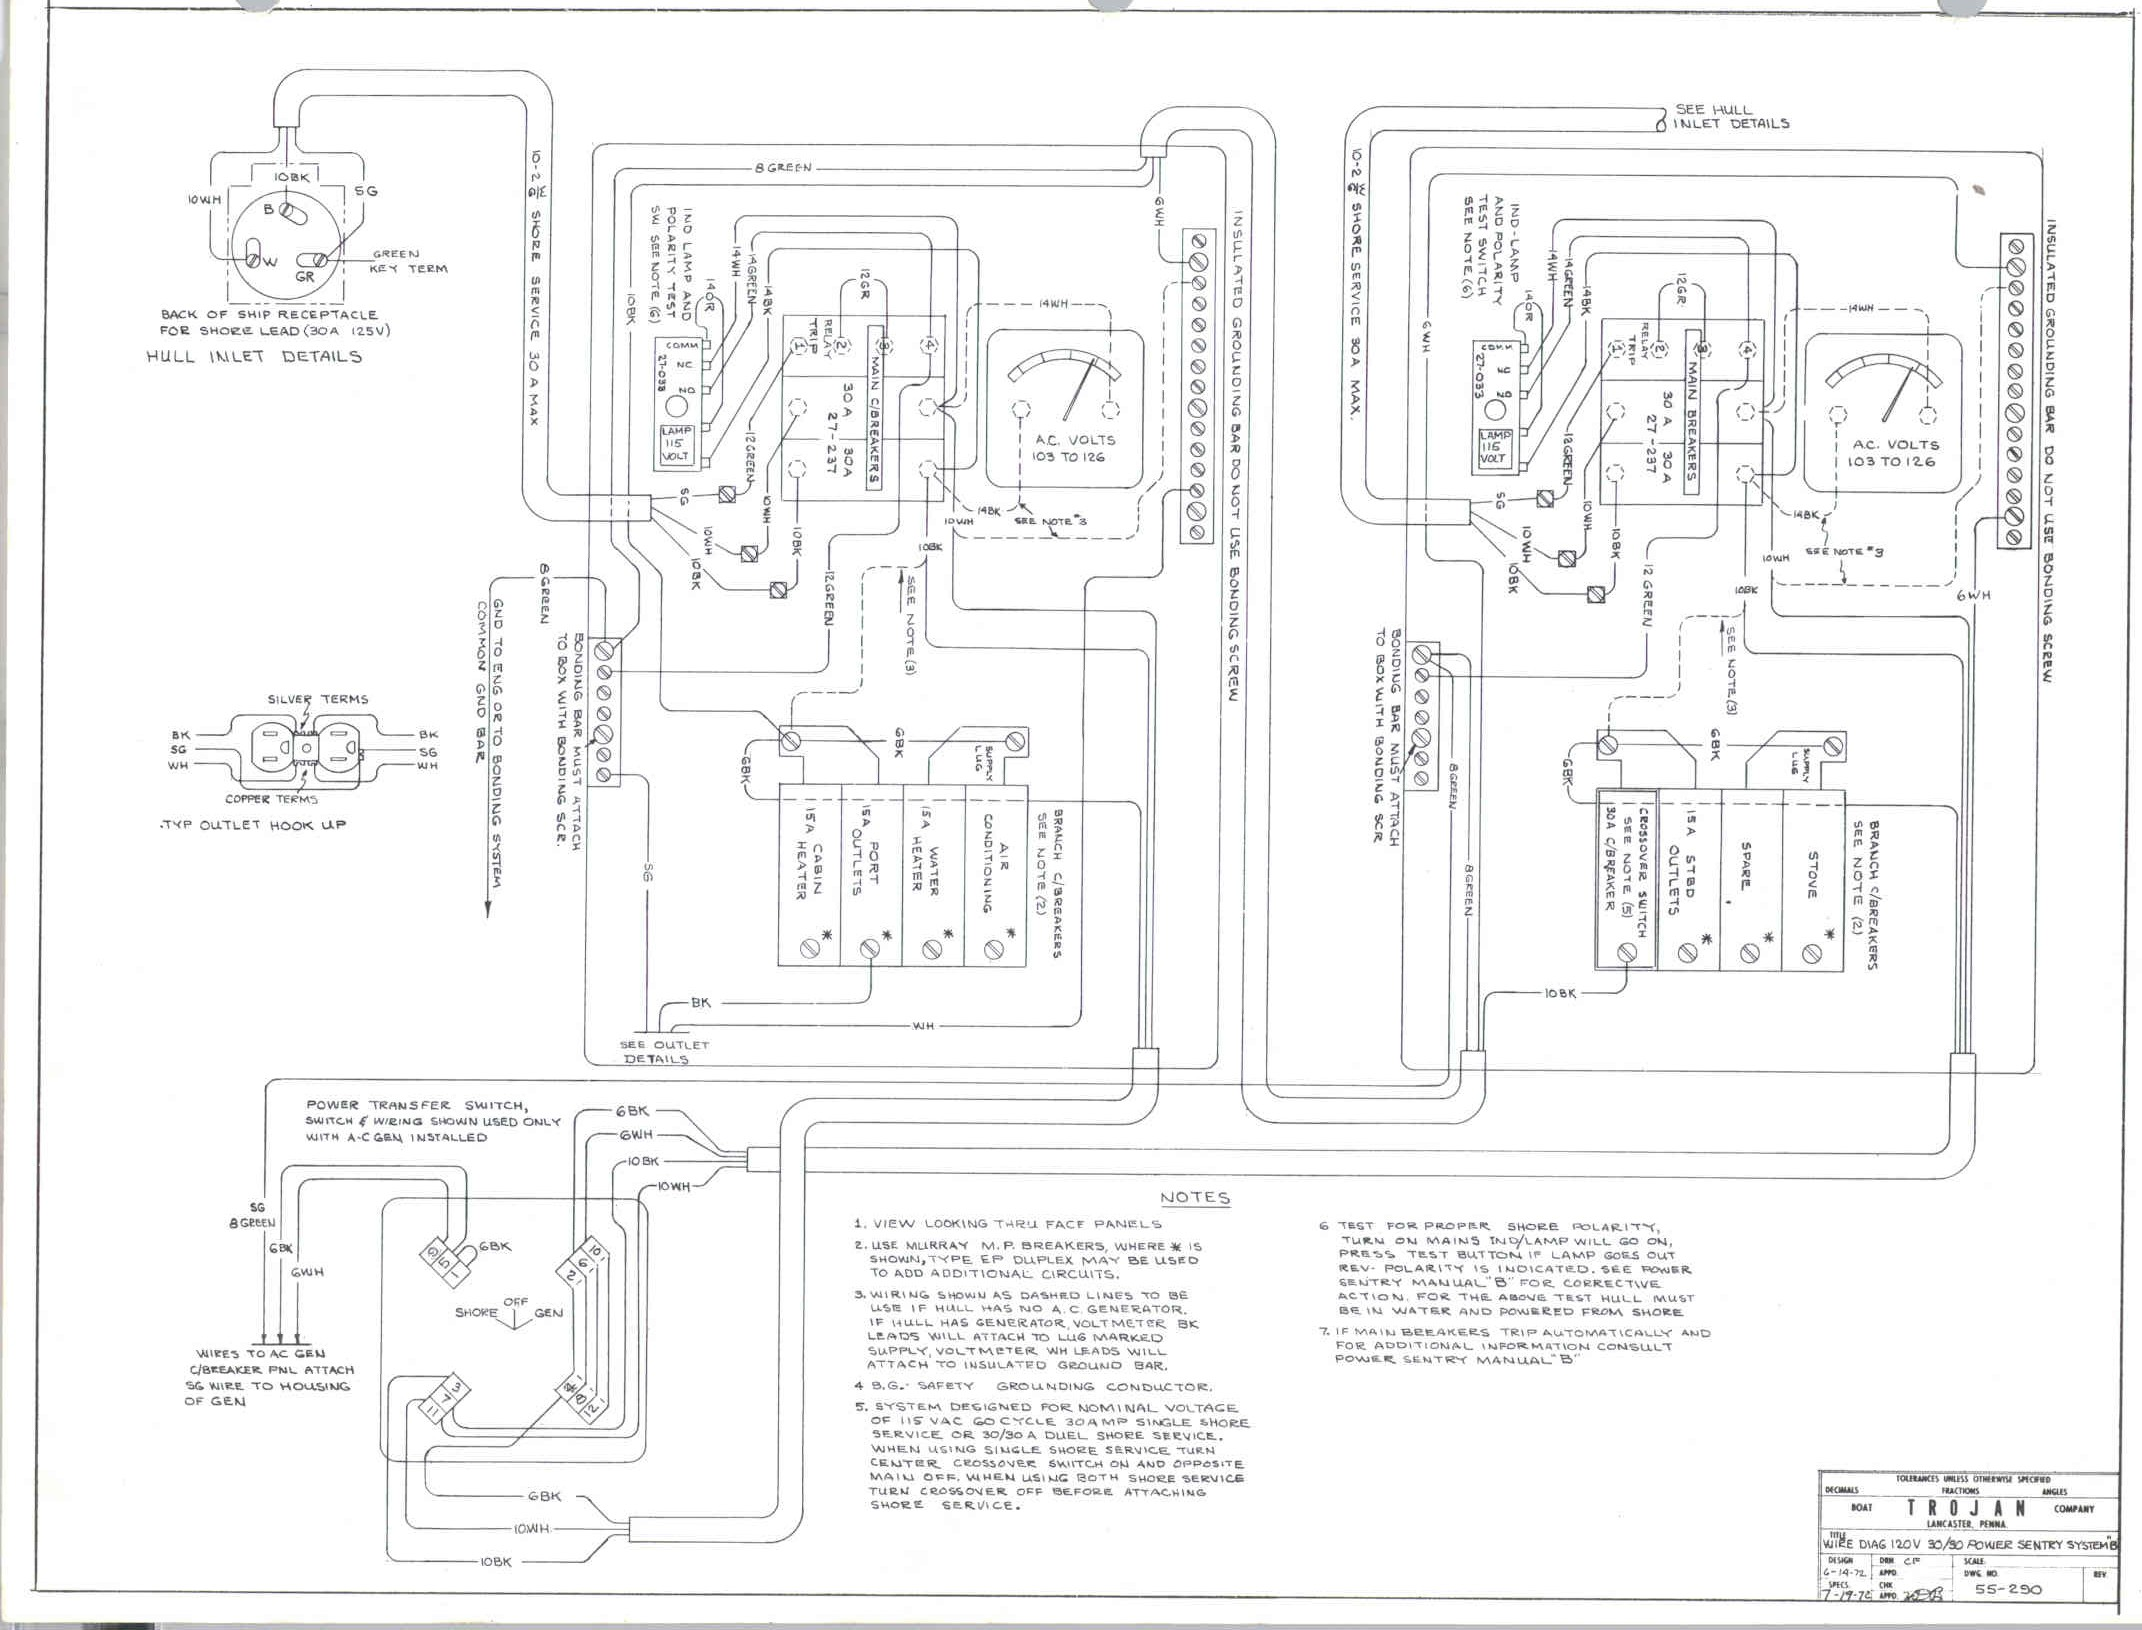 original f 32 schematics and wiring diagrams trojan boat forum schematic wiring harness for boats www rnr marine com trojan trojan 2jul19 jpg